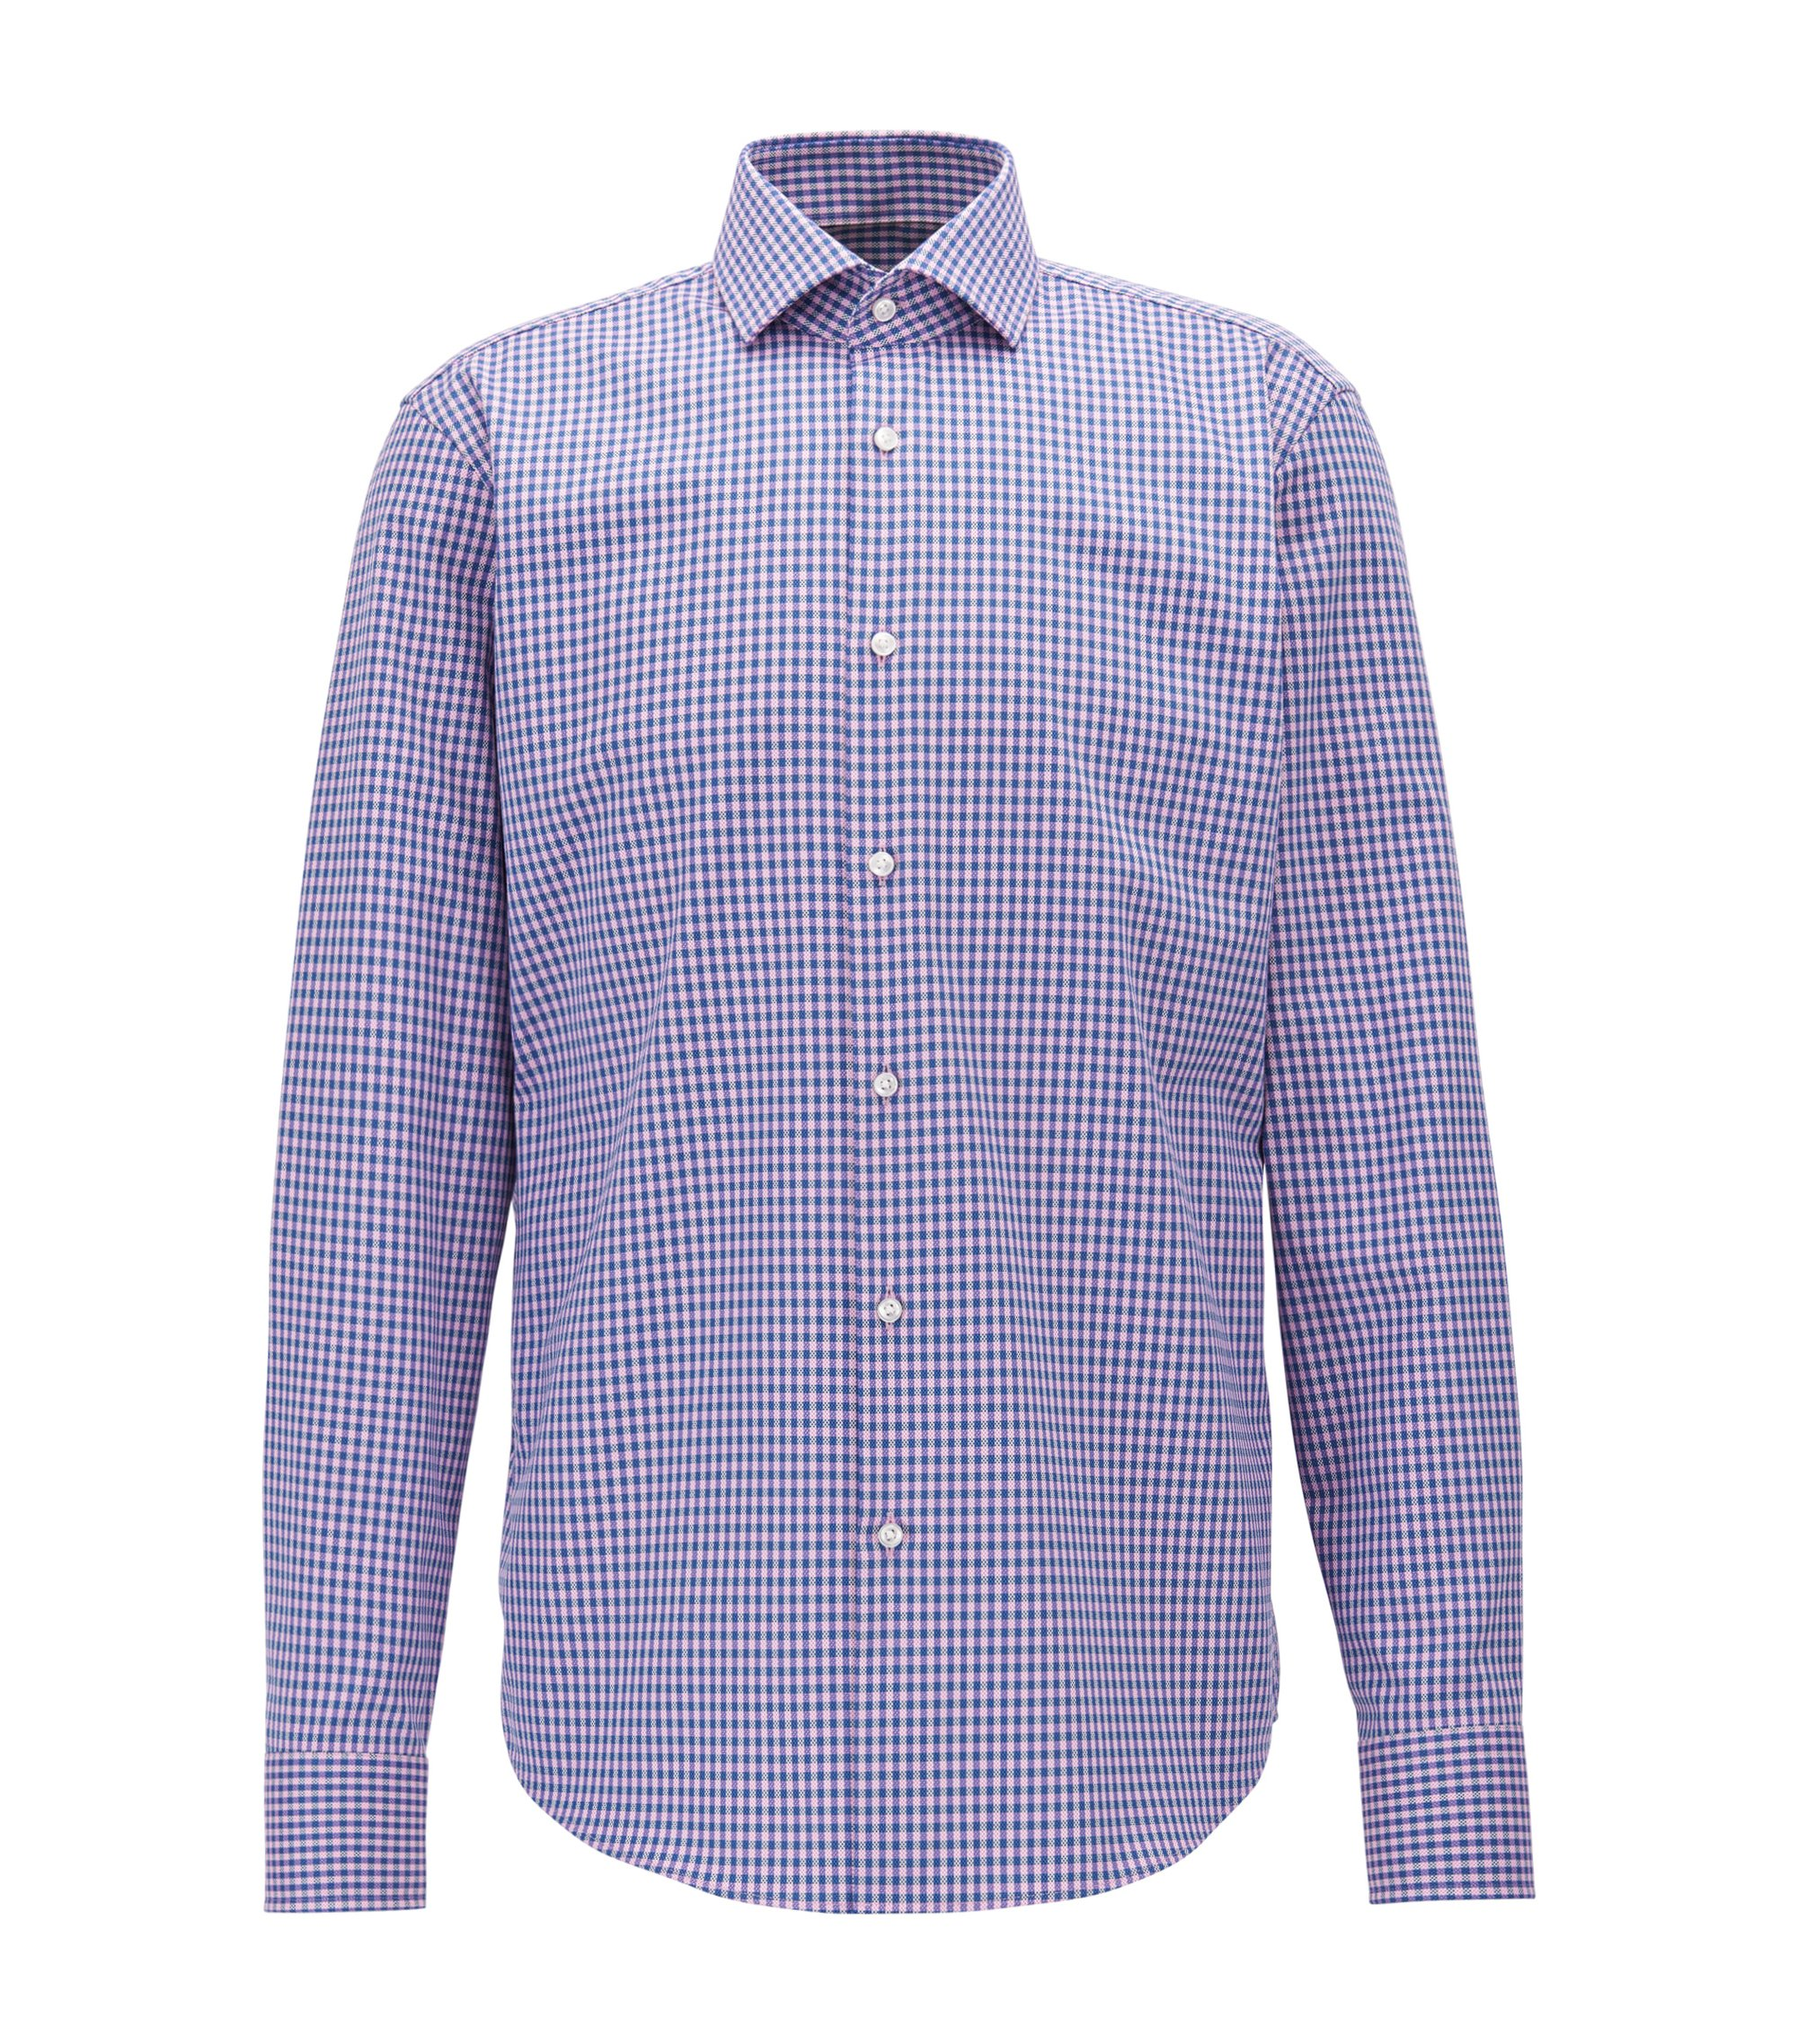 Regular-fit checked Oxford cotton shirt with Fresh Active finish, Patterned